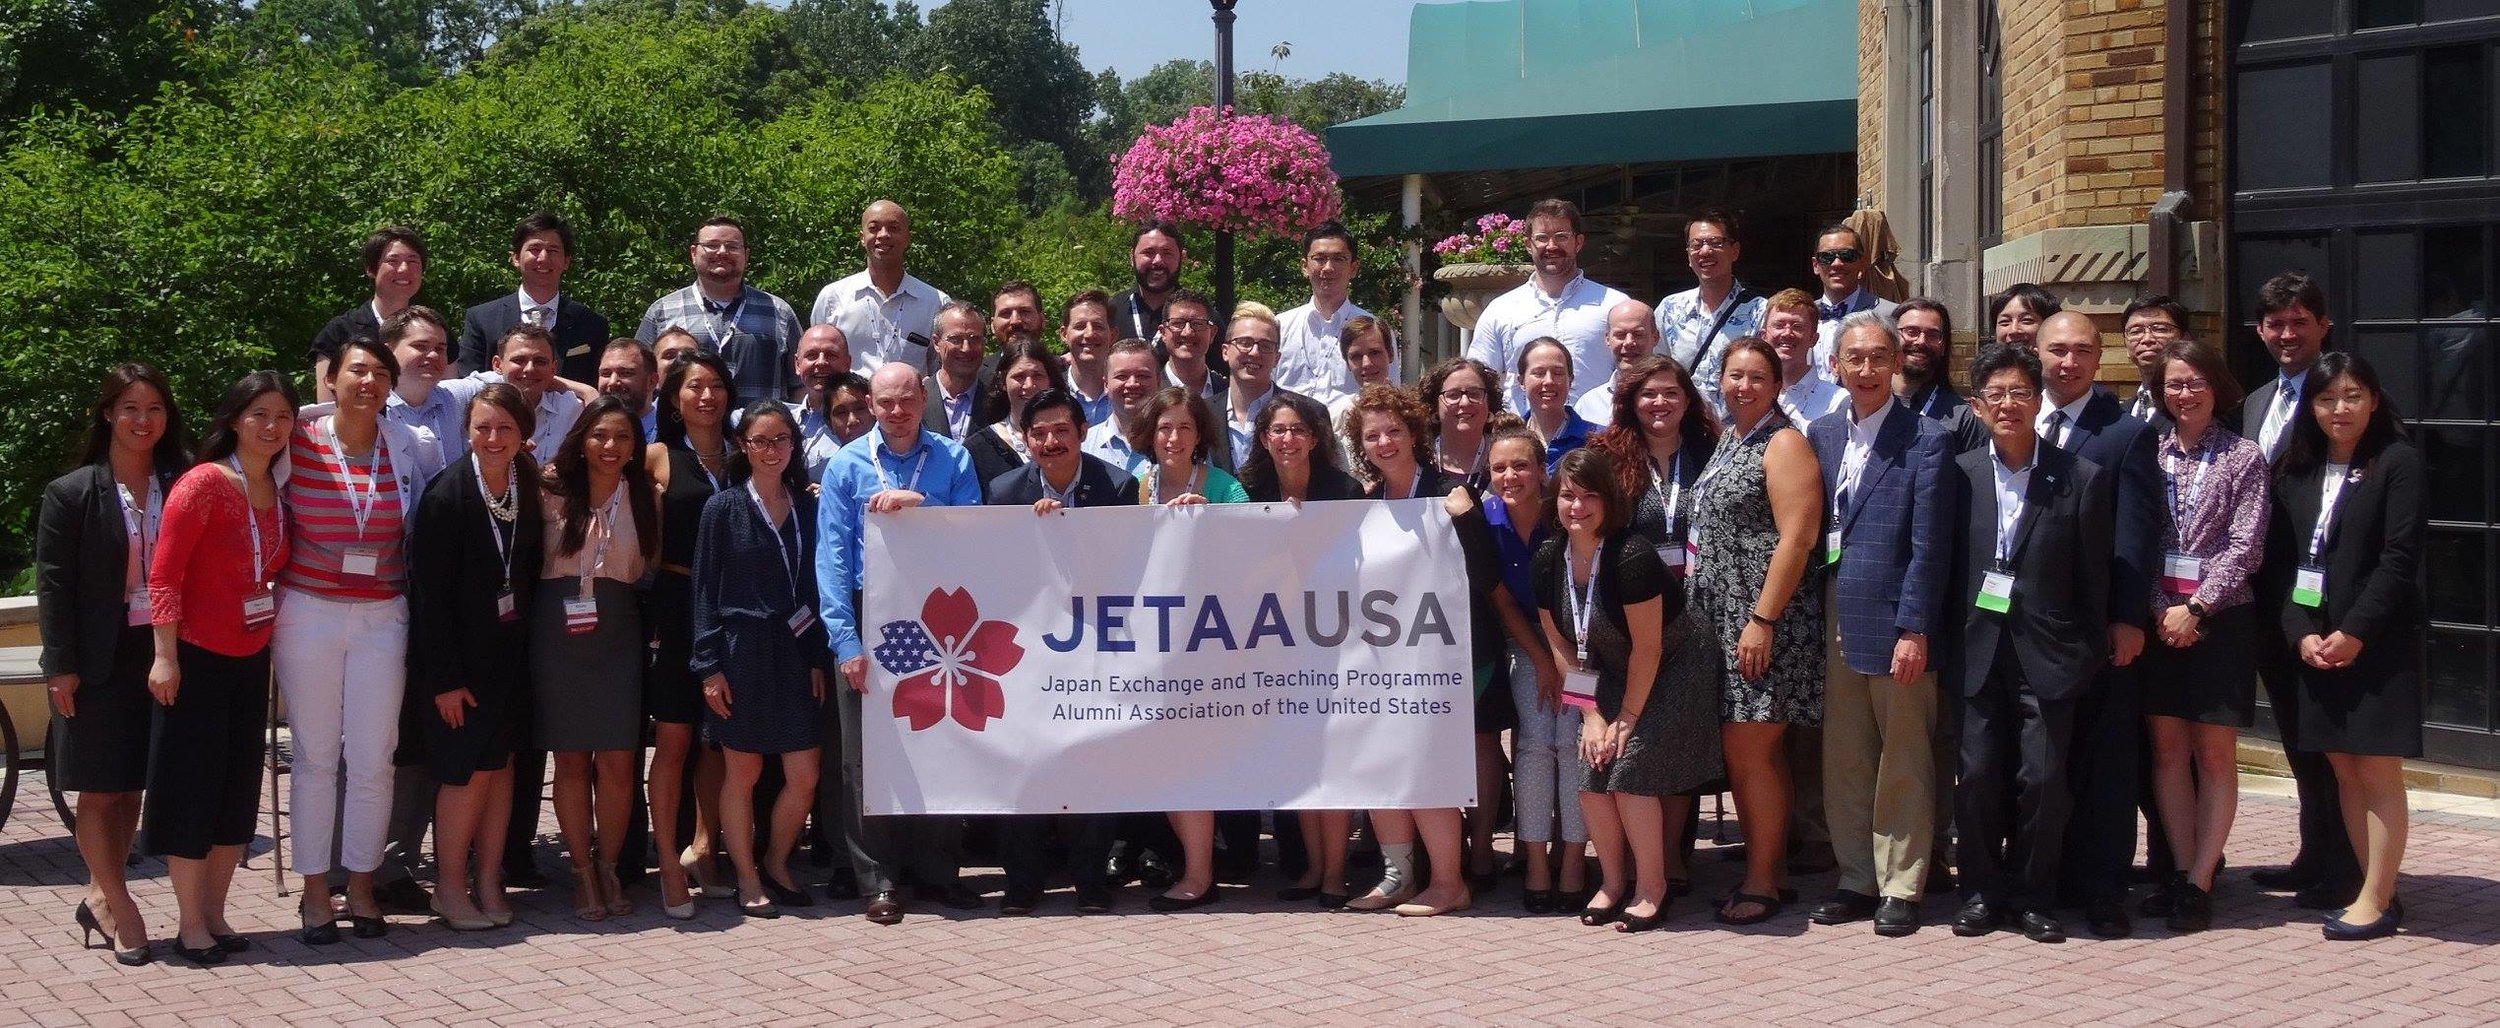 2017 JETAA USA National Conference & JET30 Reunion in Washington DC  August 4, 2017- Pictured above are the delegates from all JETAA chapters in the USA, Canadian delegates and CLAIR representatives.